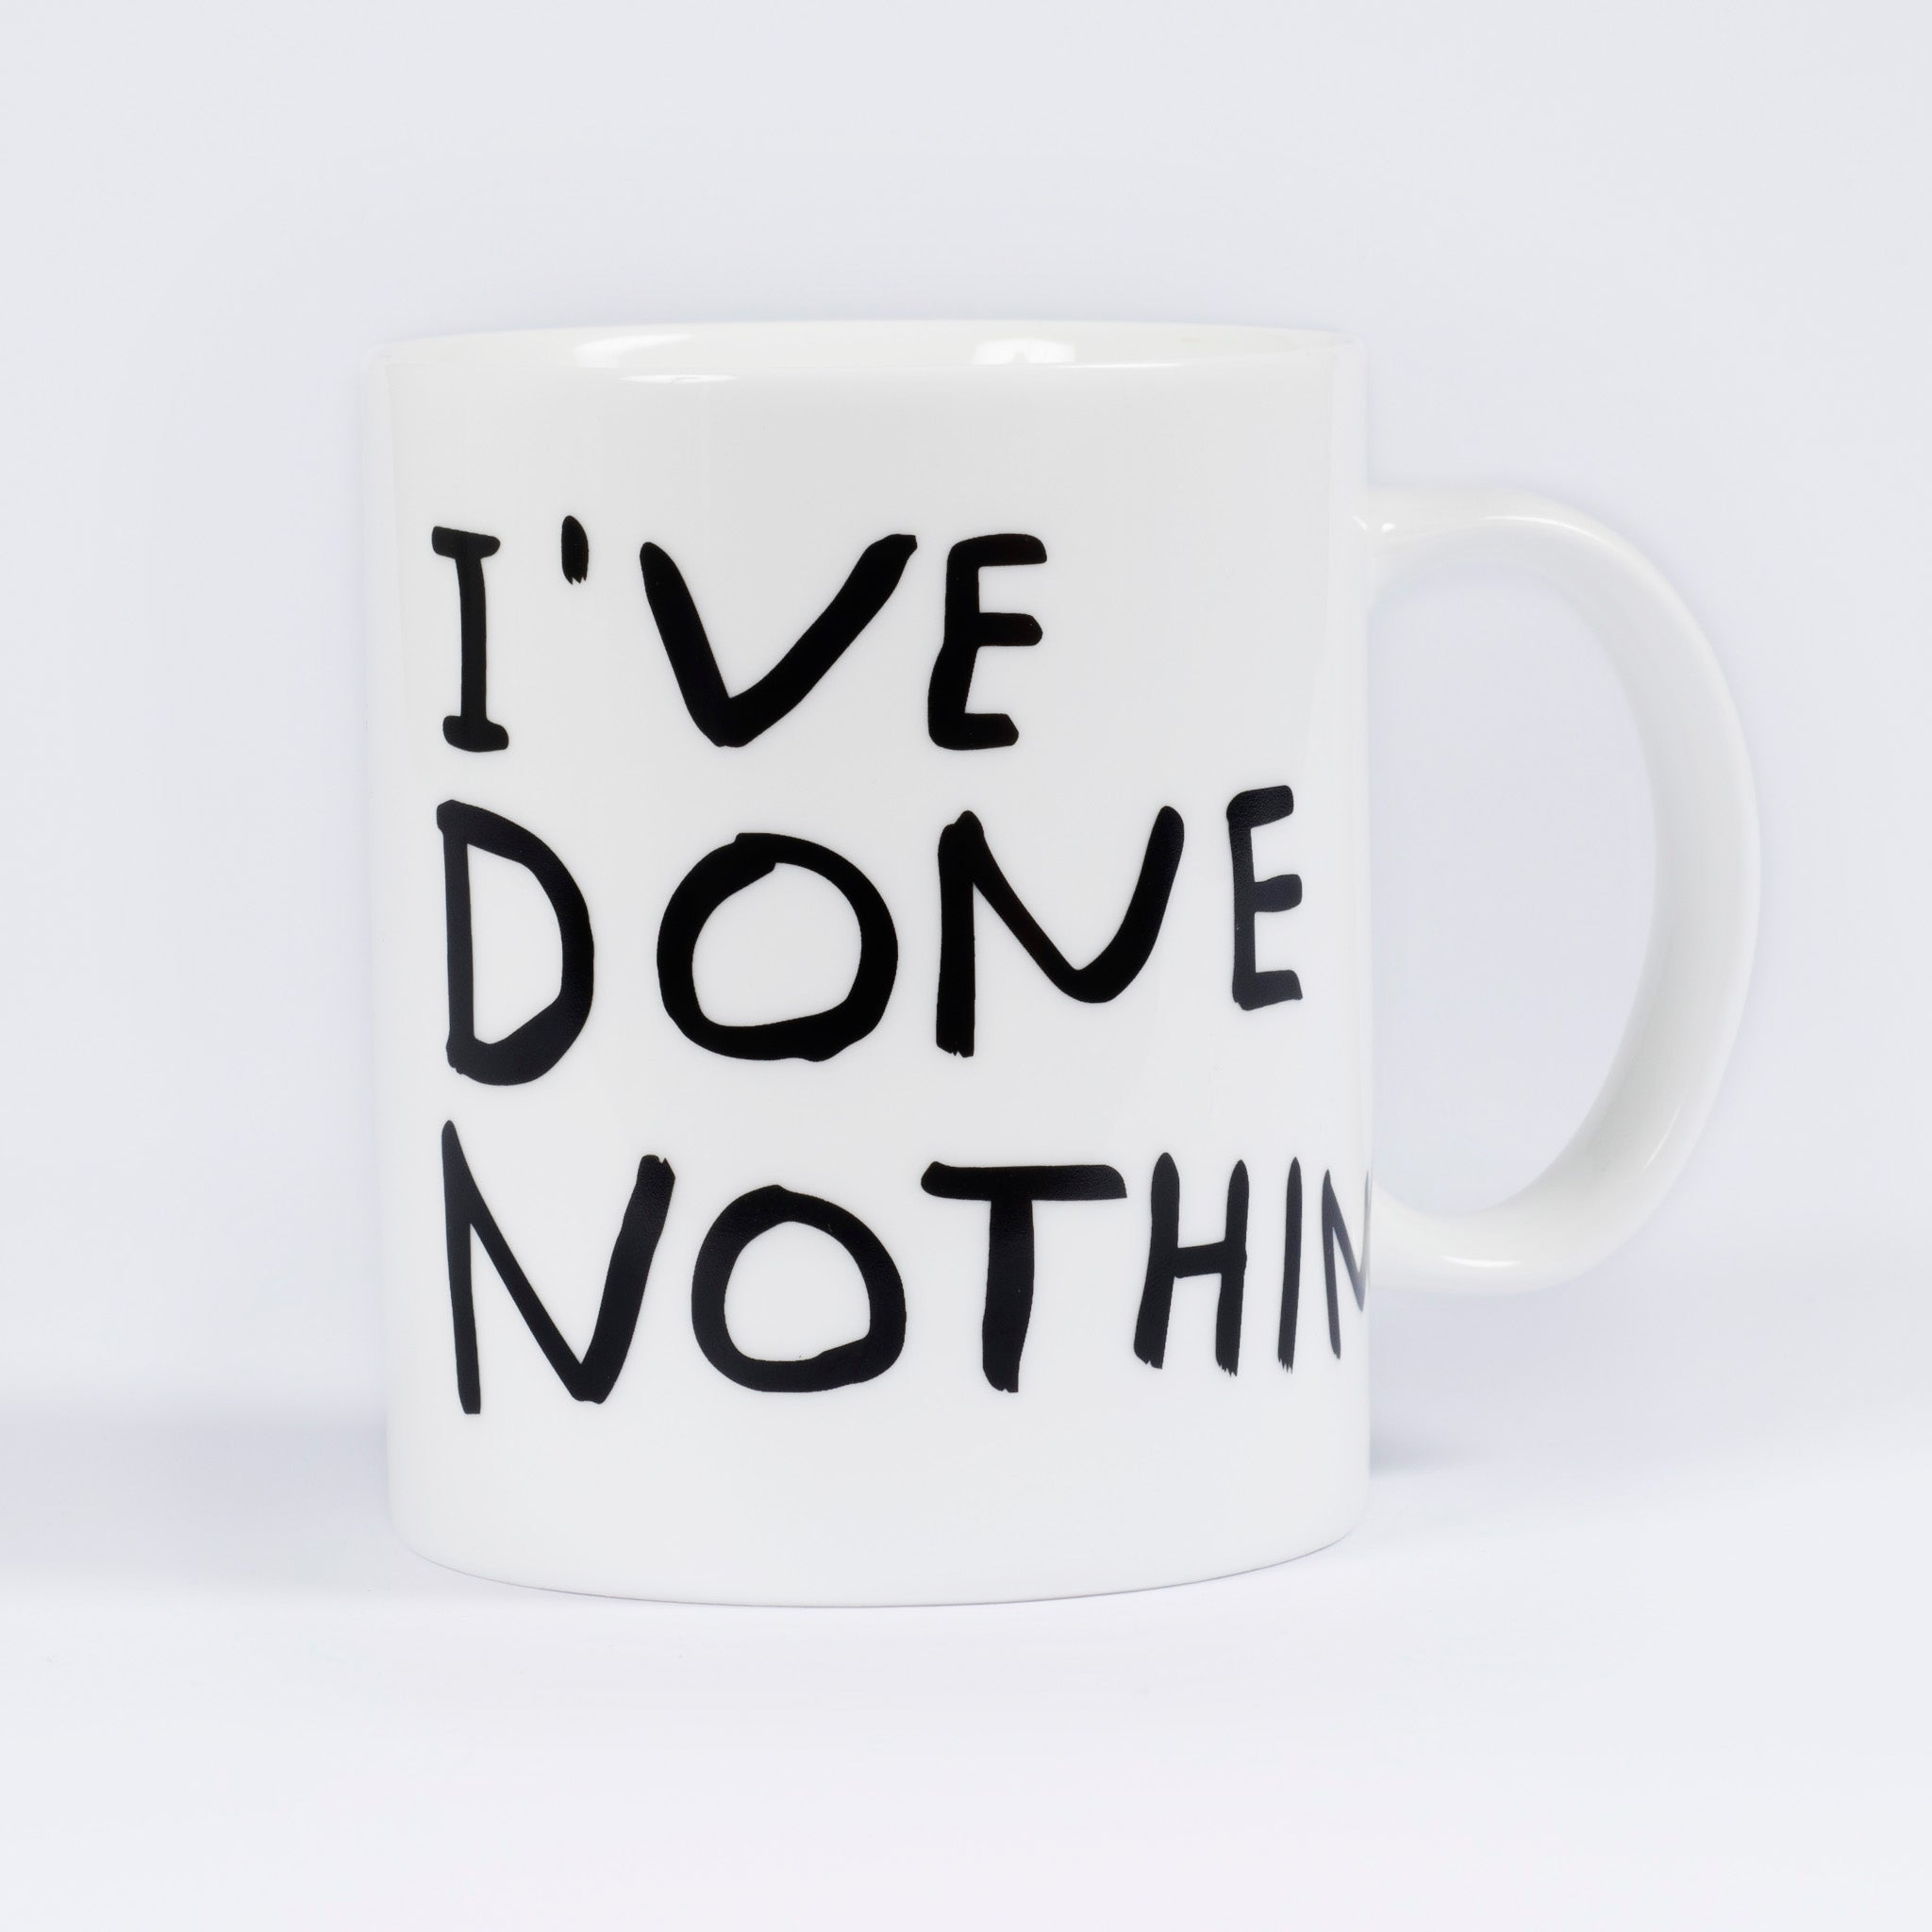 David Shrigley Mug Image